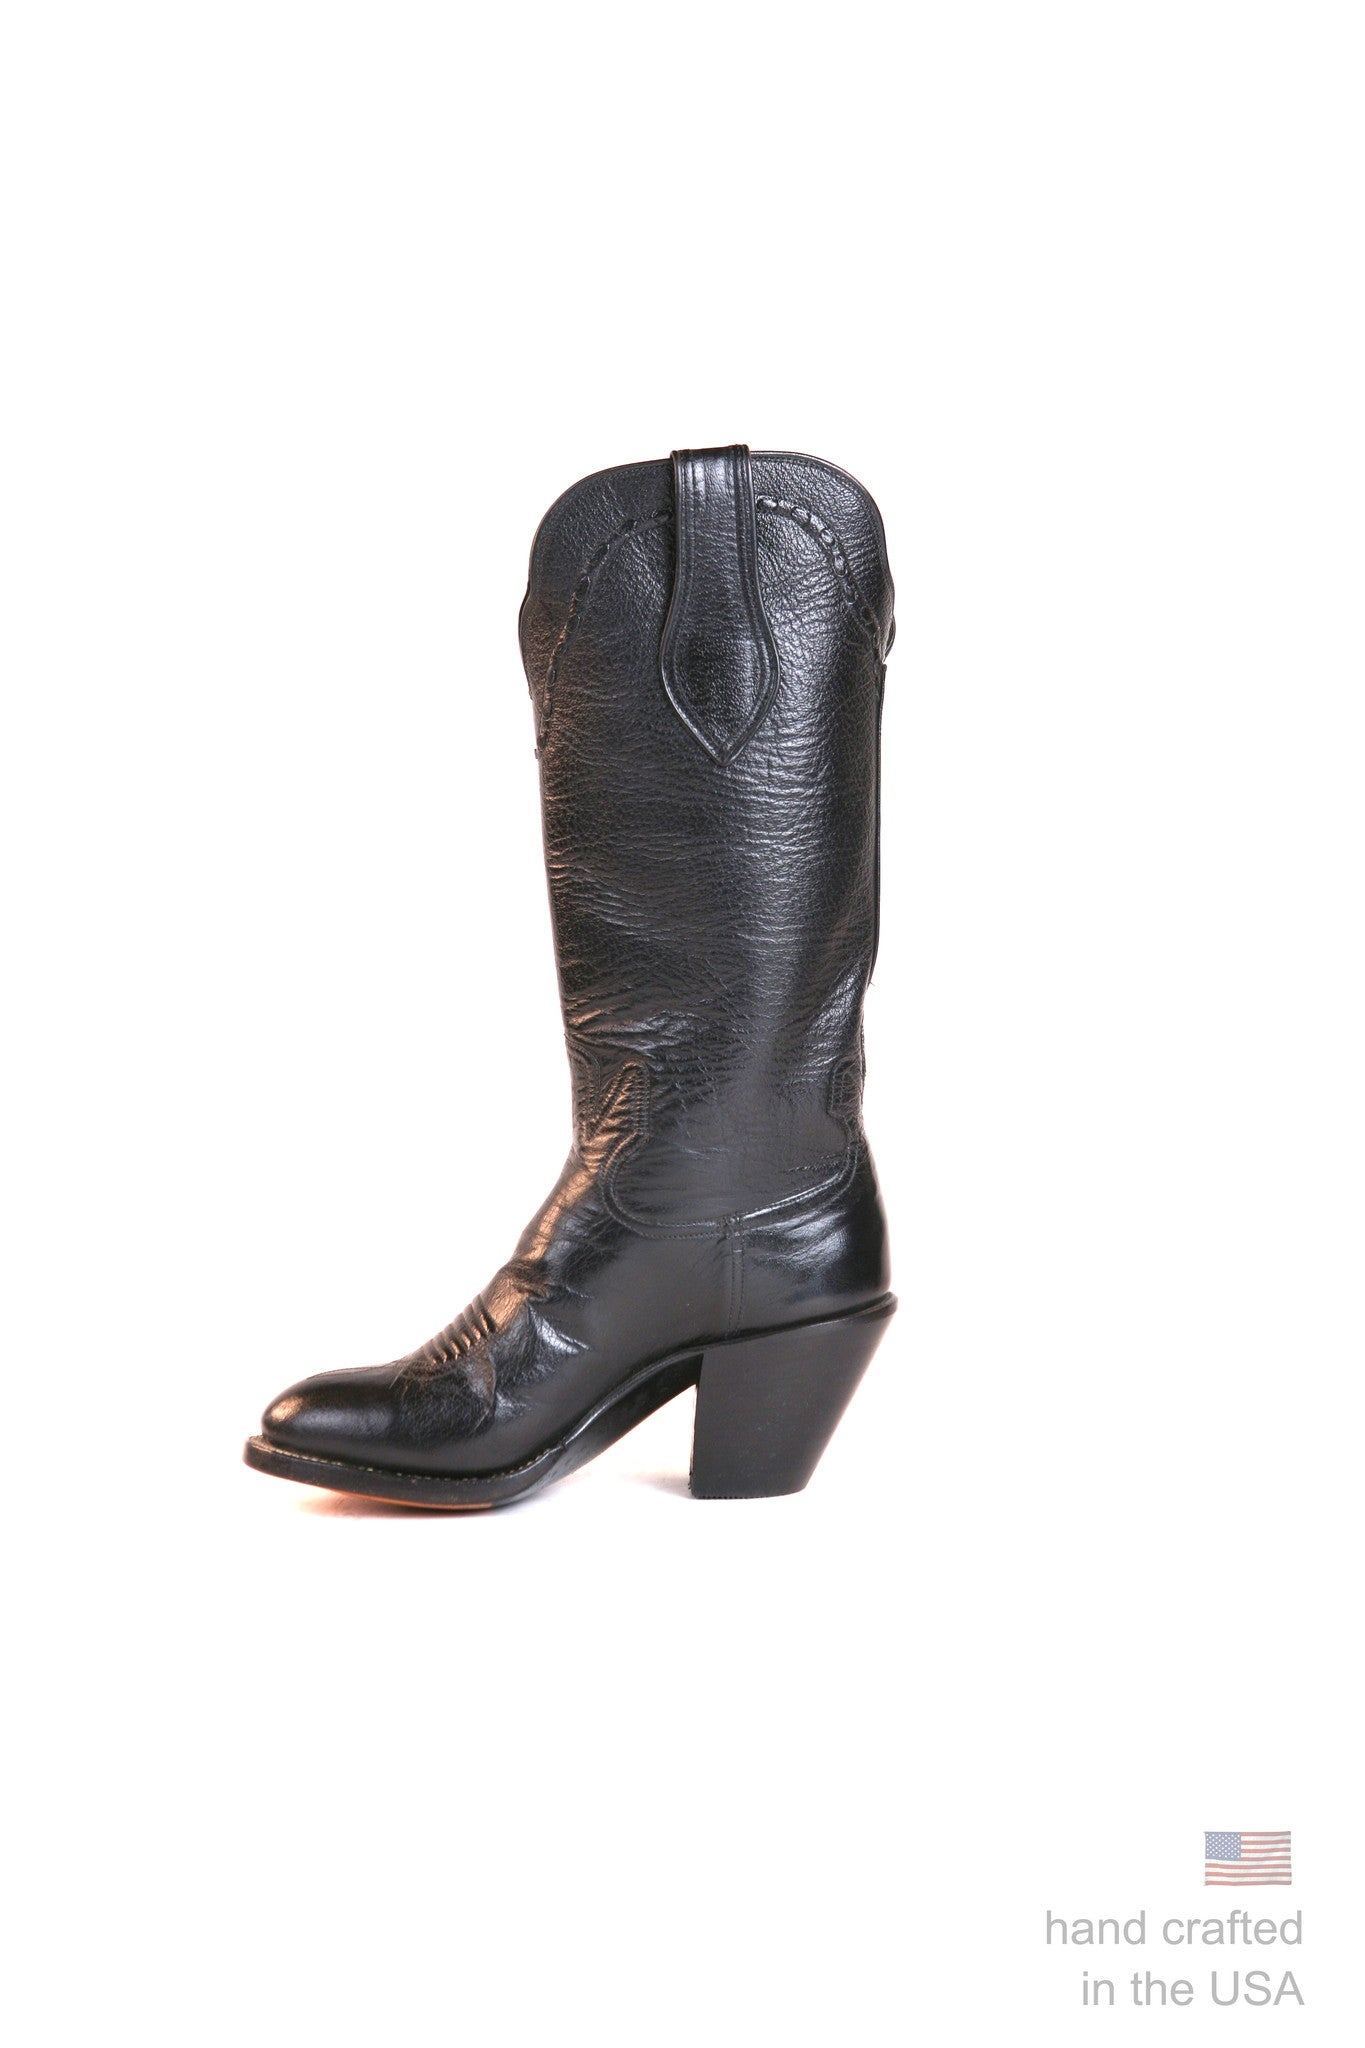 Singles: Boot 0018: Size 5A